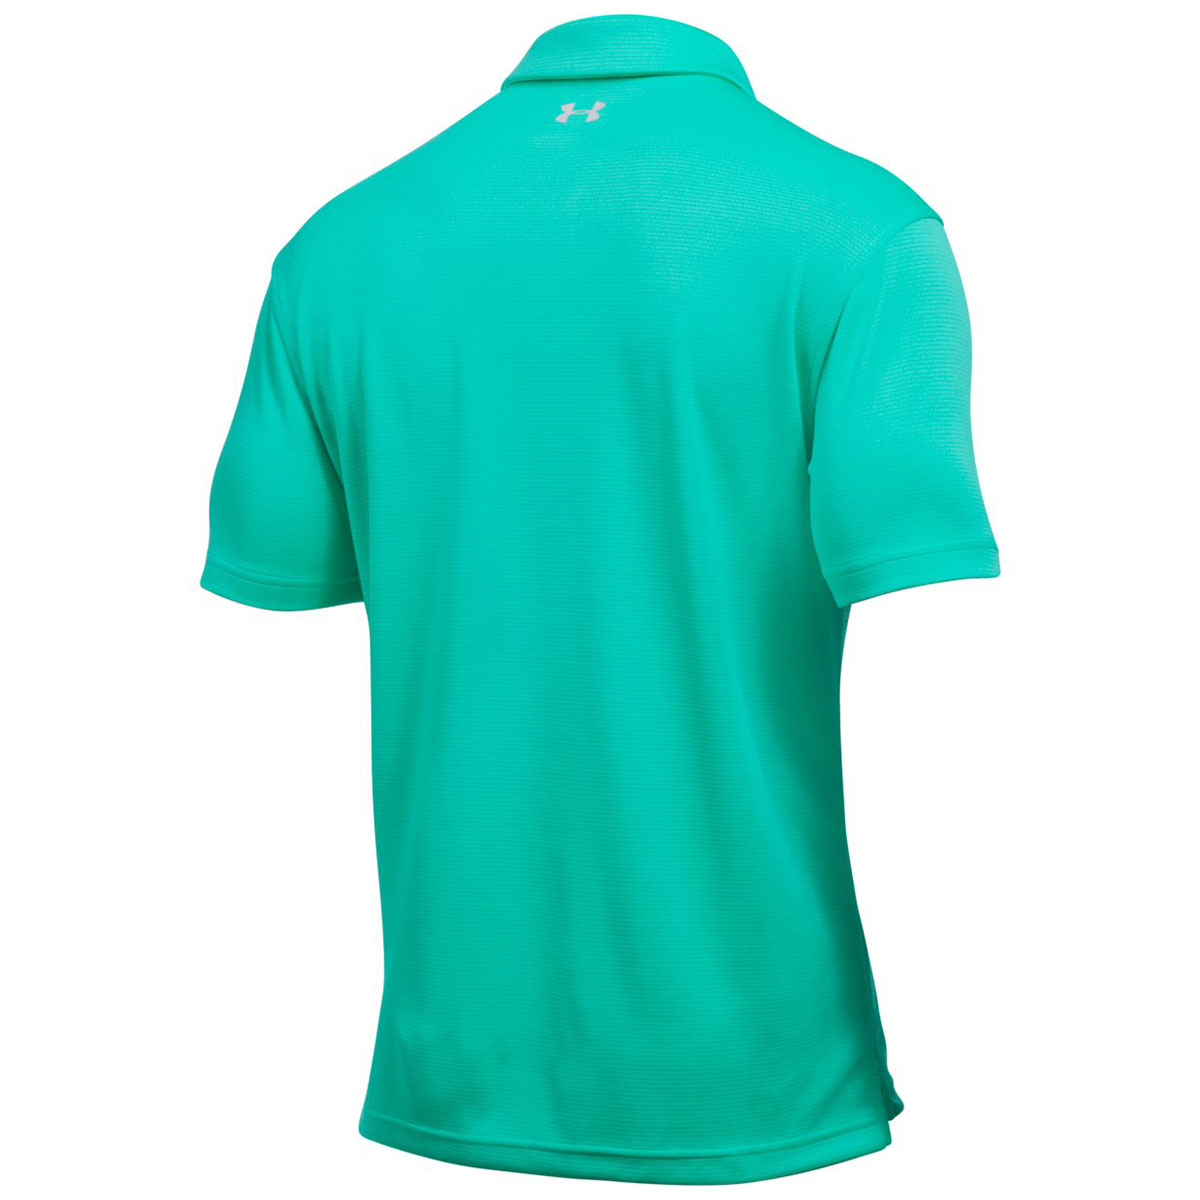 Under-Armour-Mens-2019-Golf-Tech-Wicking-Textured-Soft-Light-Polo-Shirt thumbnail 3